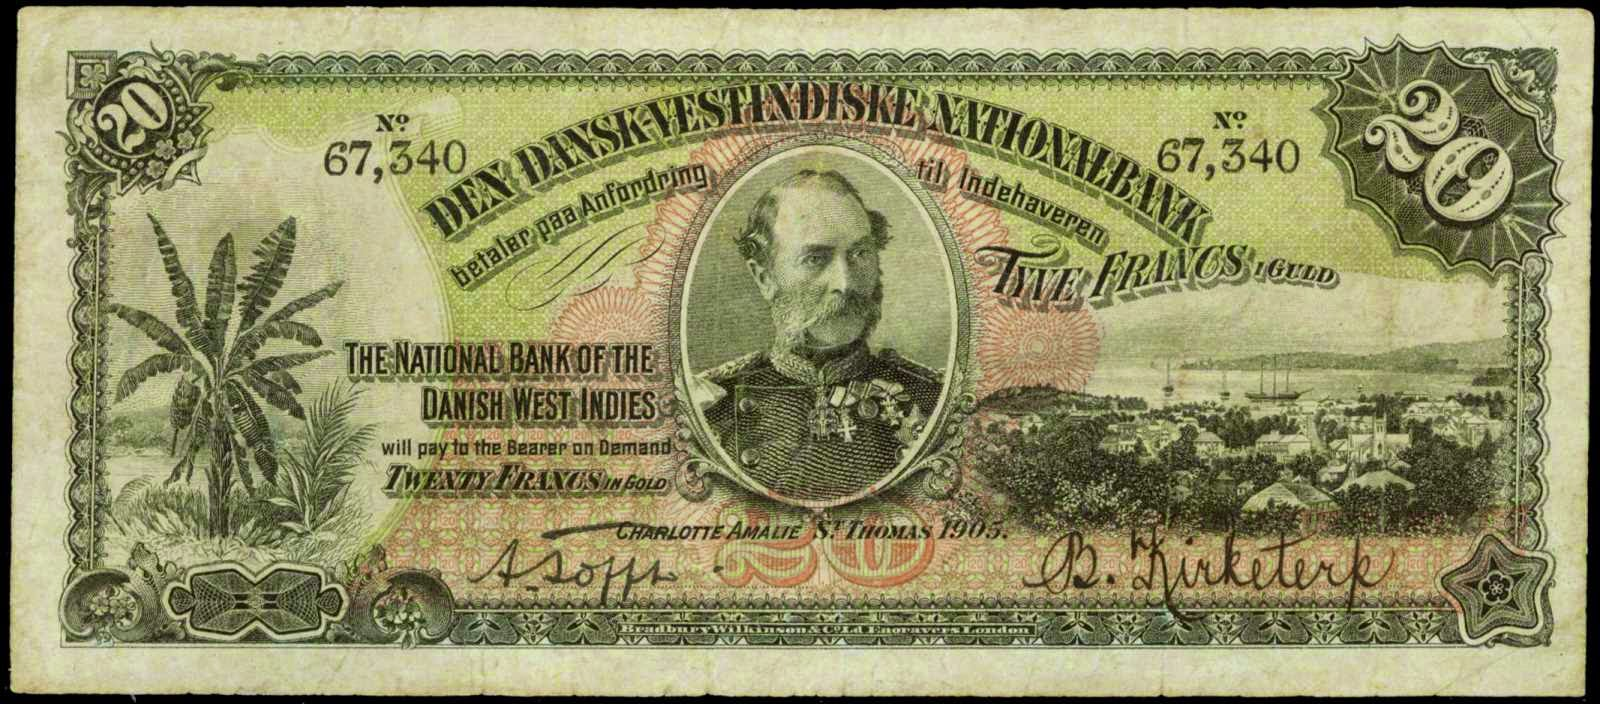 Danish West Indies banknotes 20 Francs in Gold note 1905